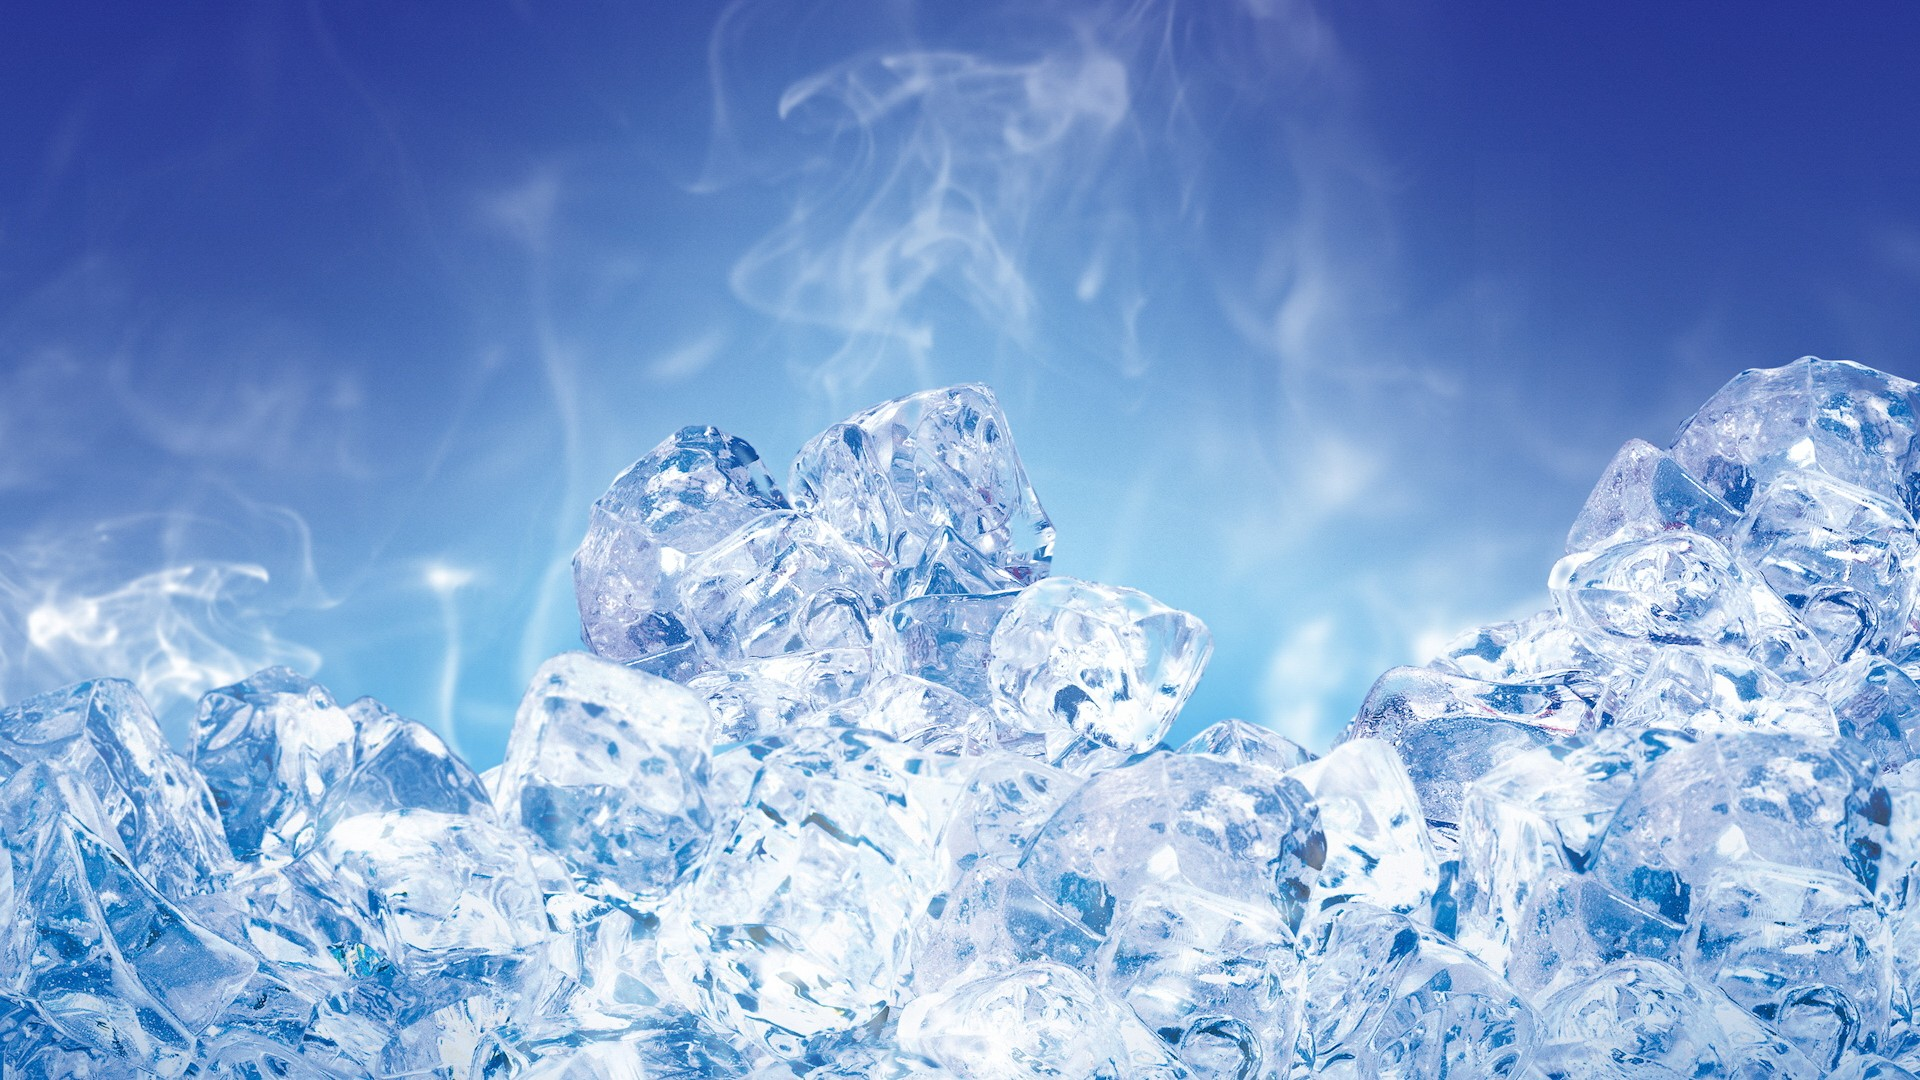 Cool Ice Wallpaper 6160